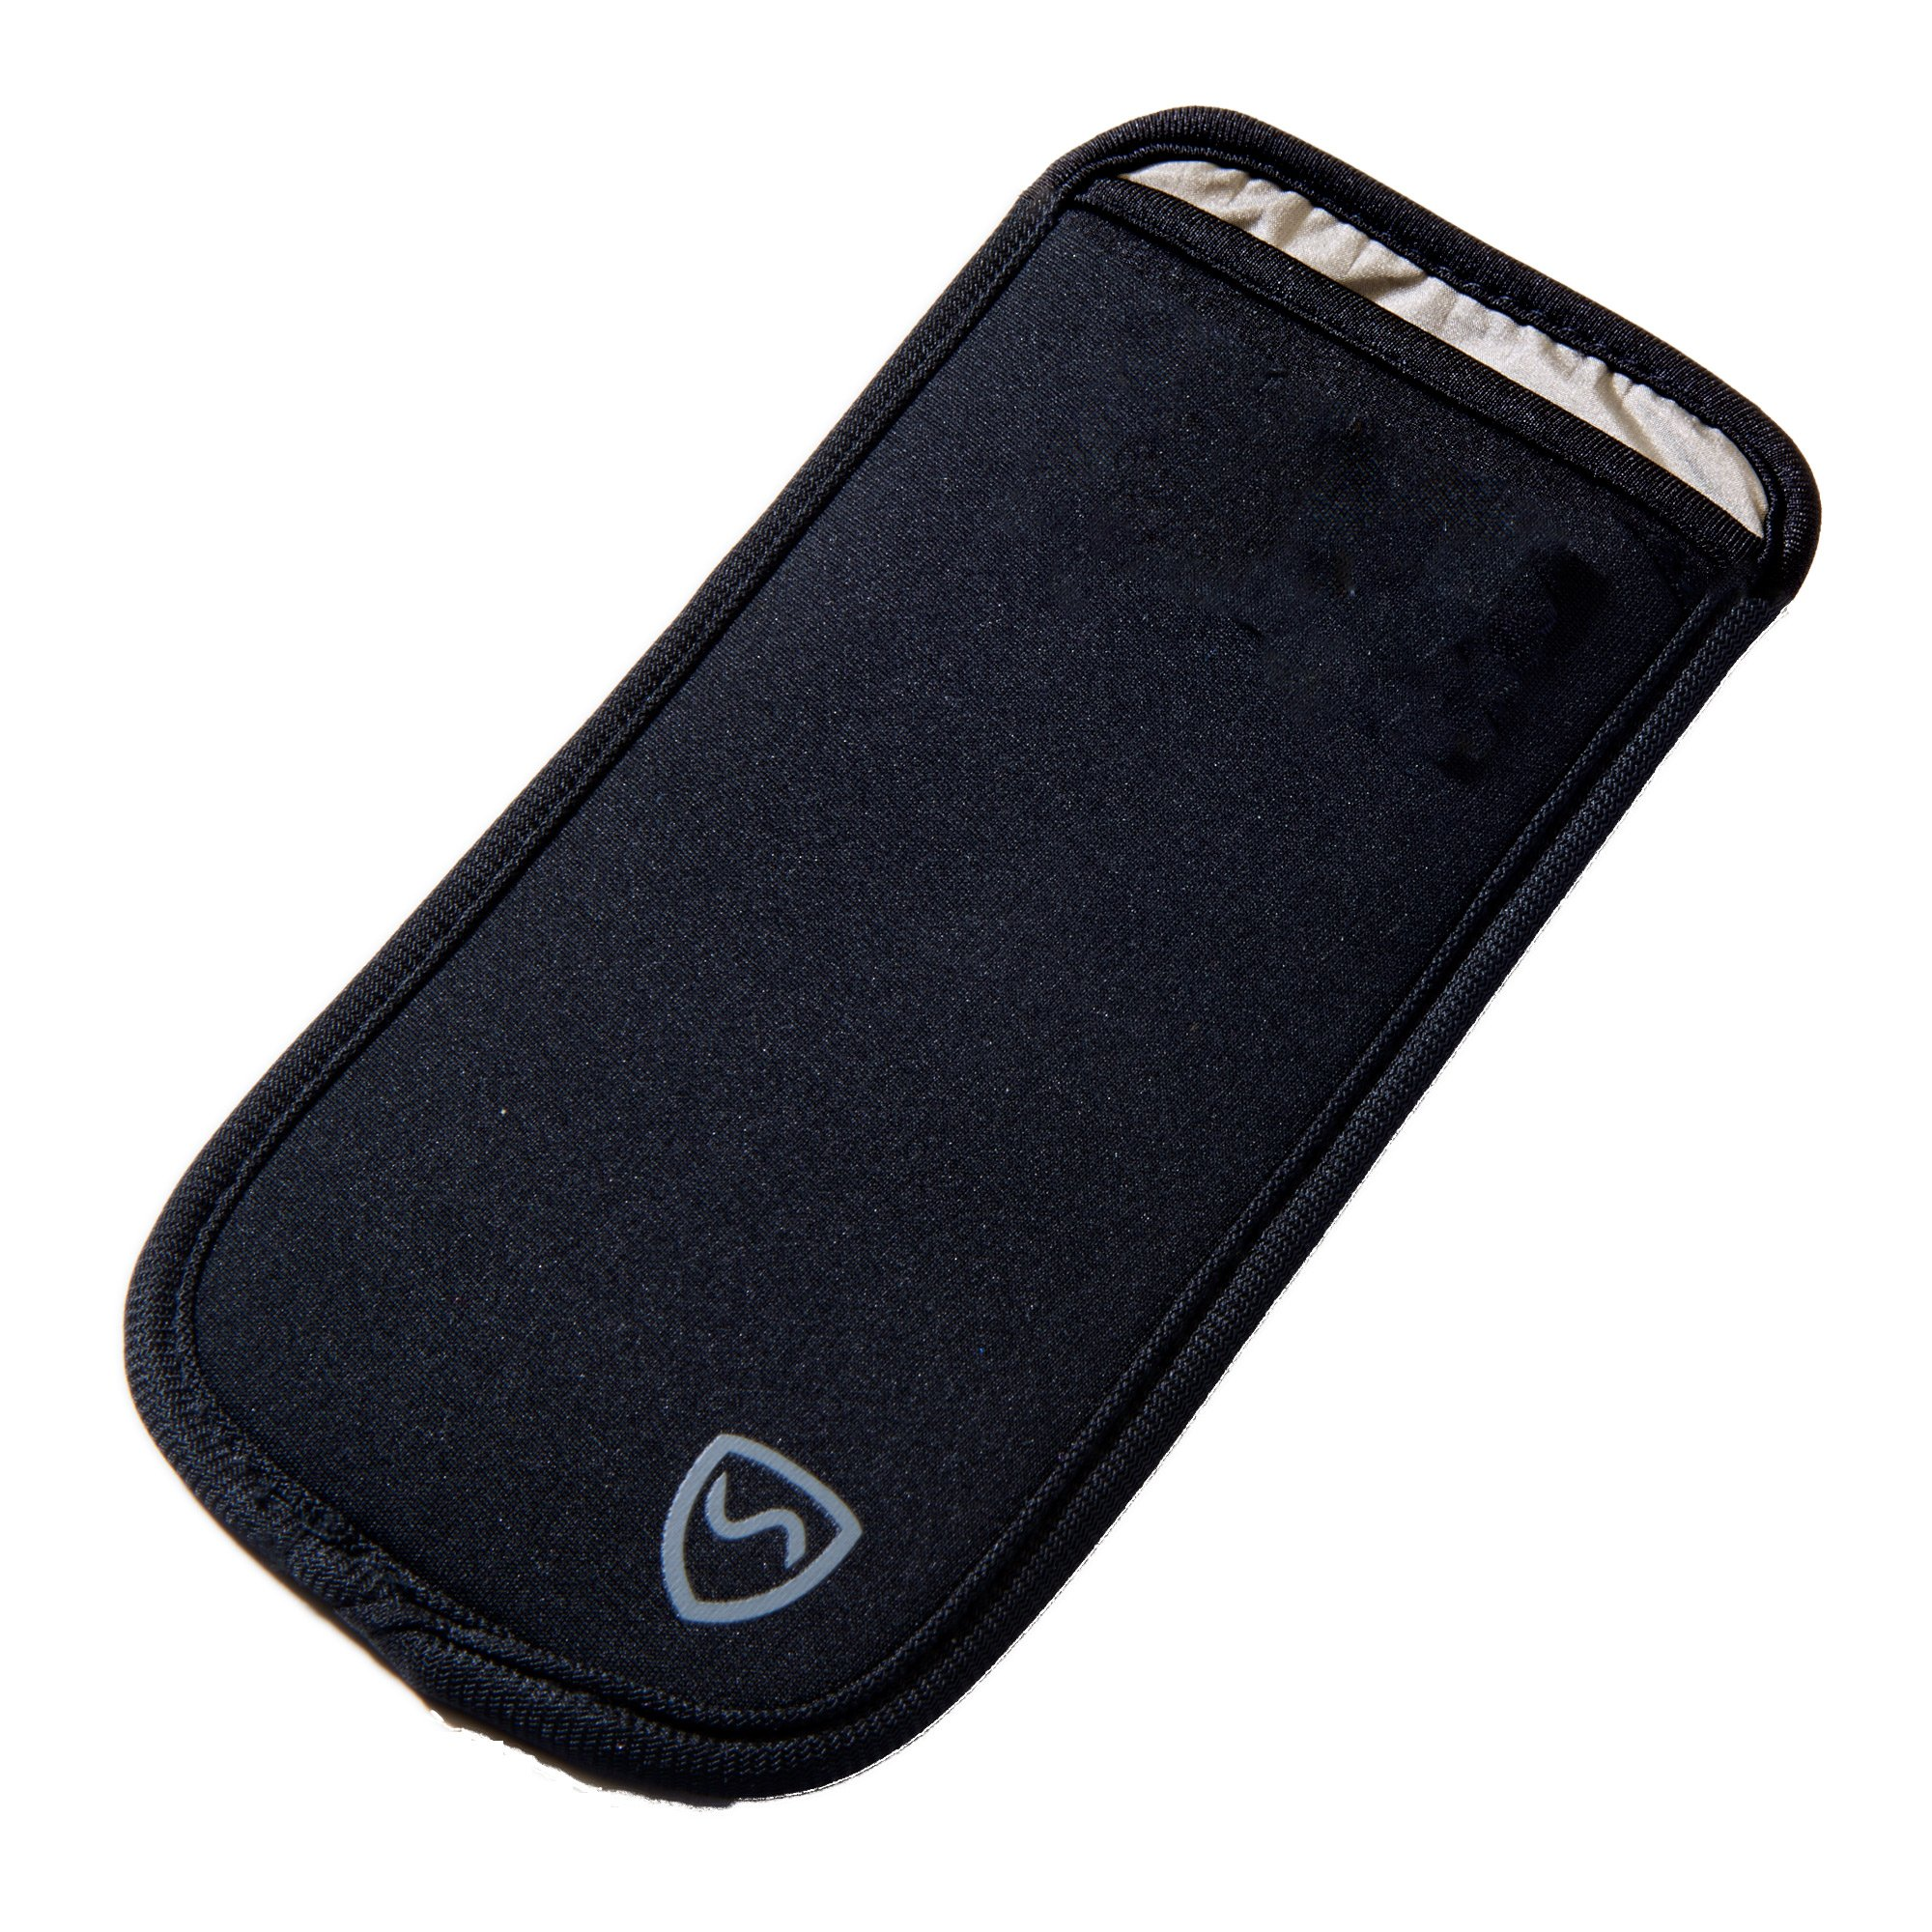 SYB Phone Pouch, Cell Phone EMF Protection Holster Sleeve for Phones up to 2.75'' Wide with Belt Hoop (Black, Large)